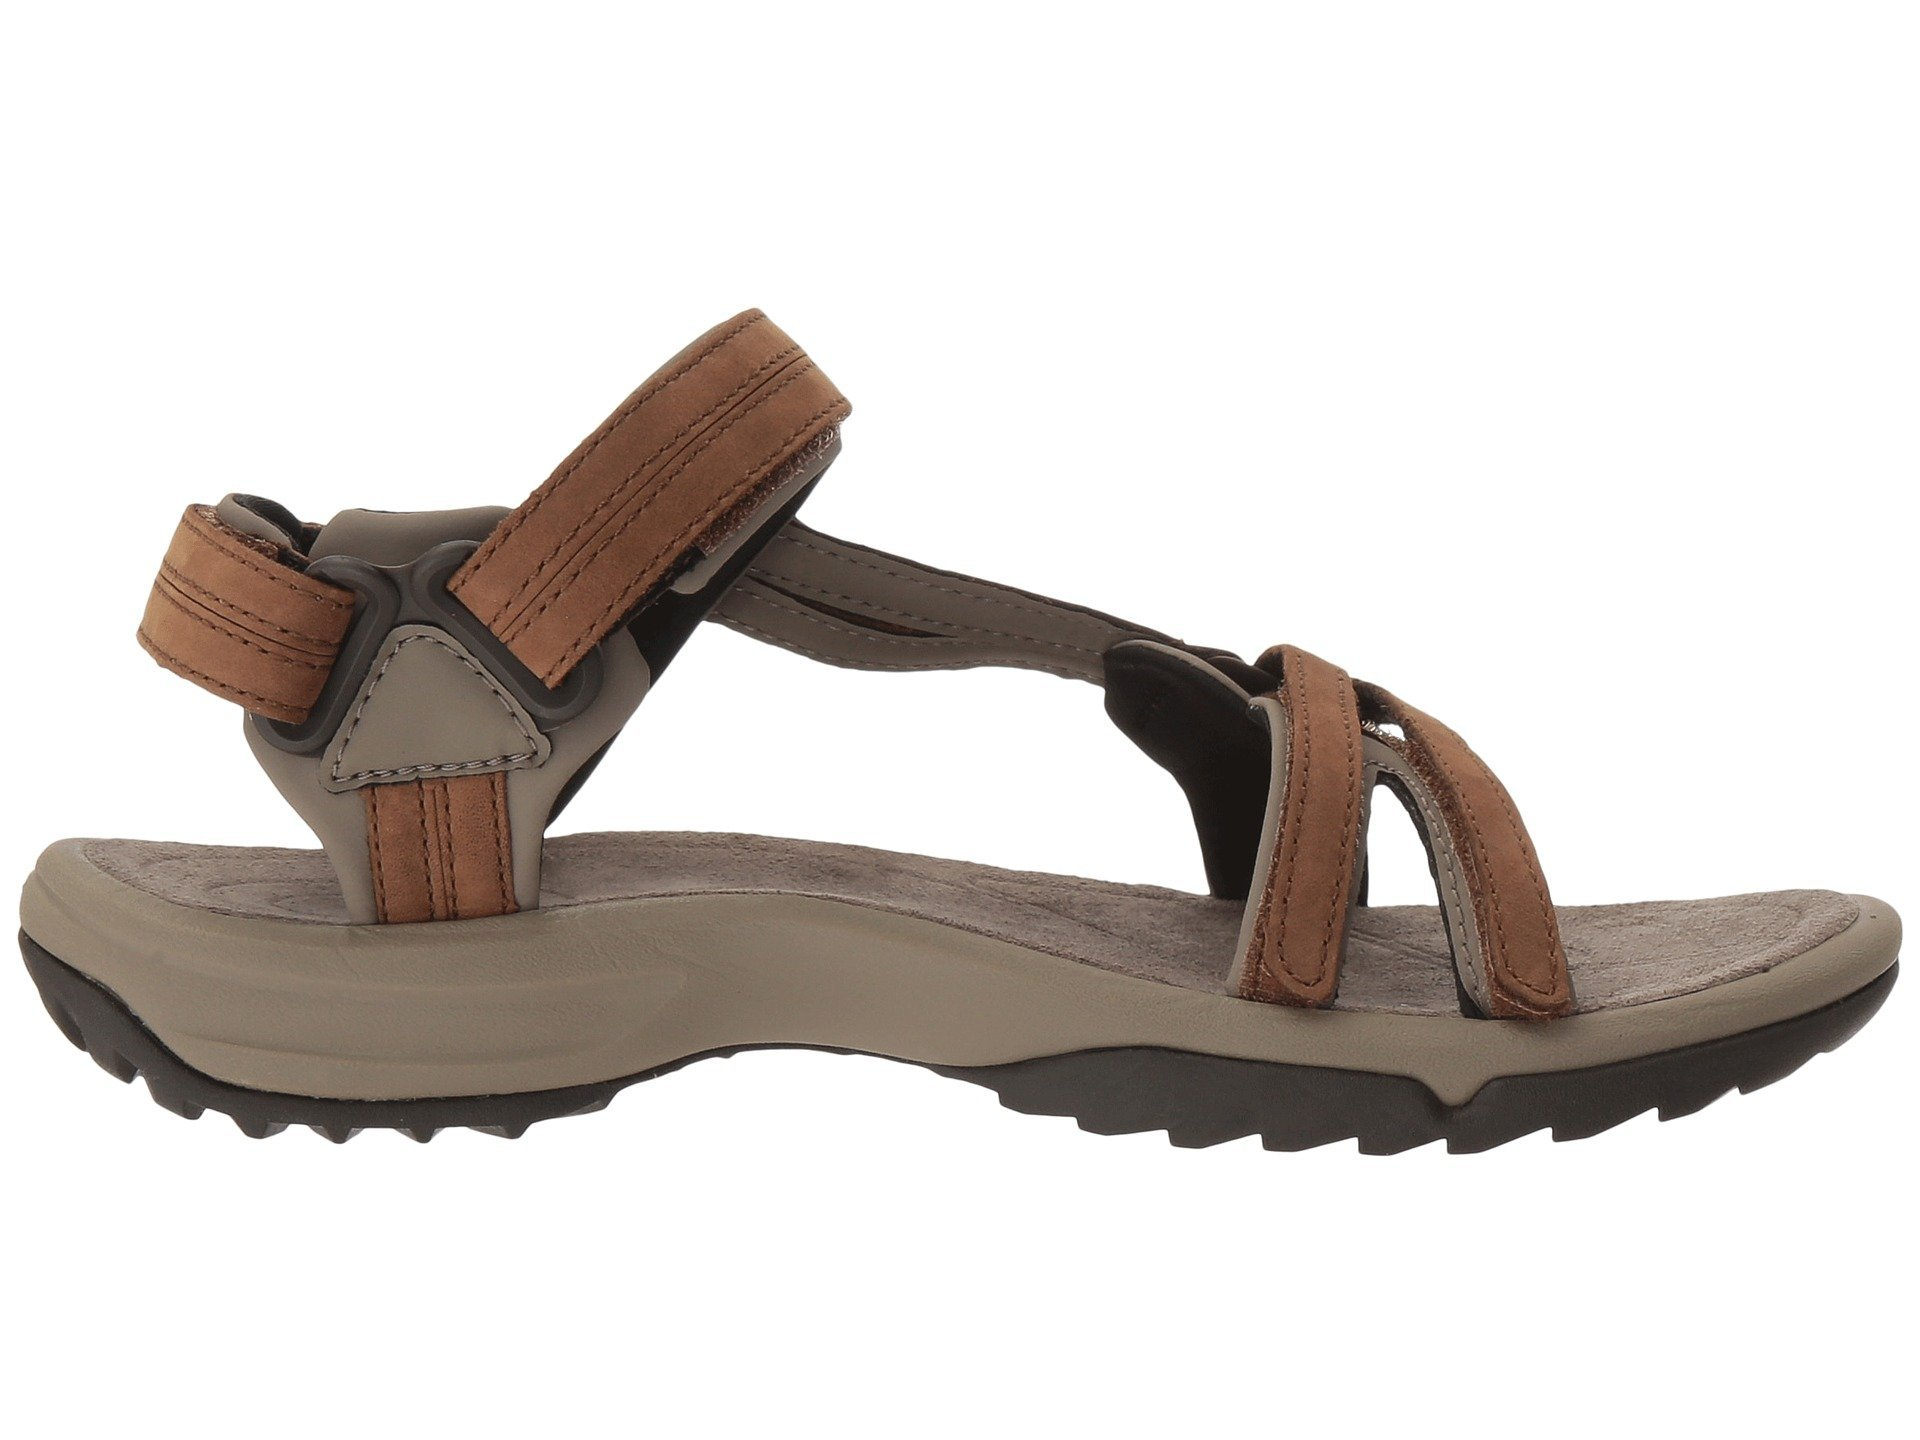 Teva Terra Fi Lite Leather Sandal Women's Hiking 8.5 Brown